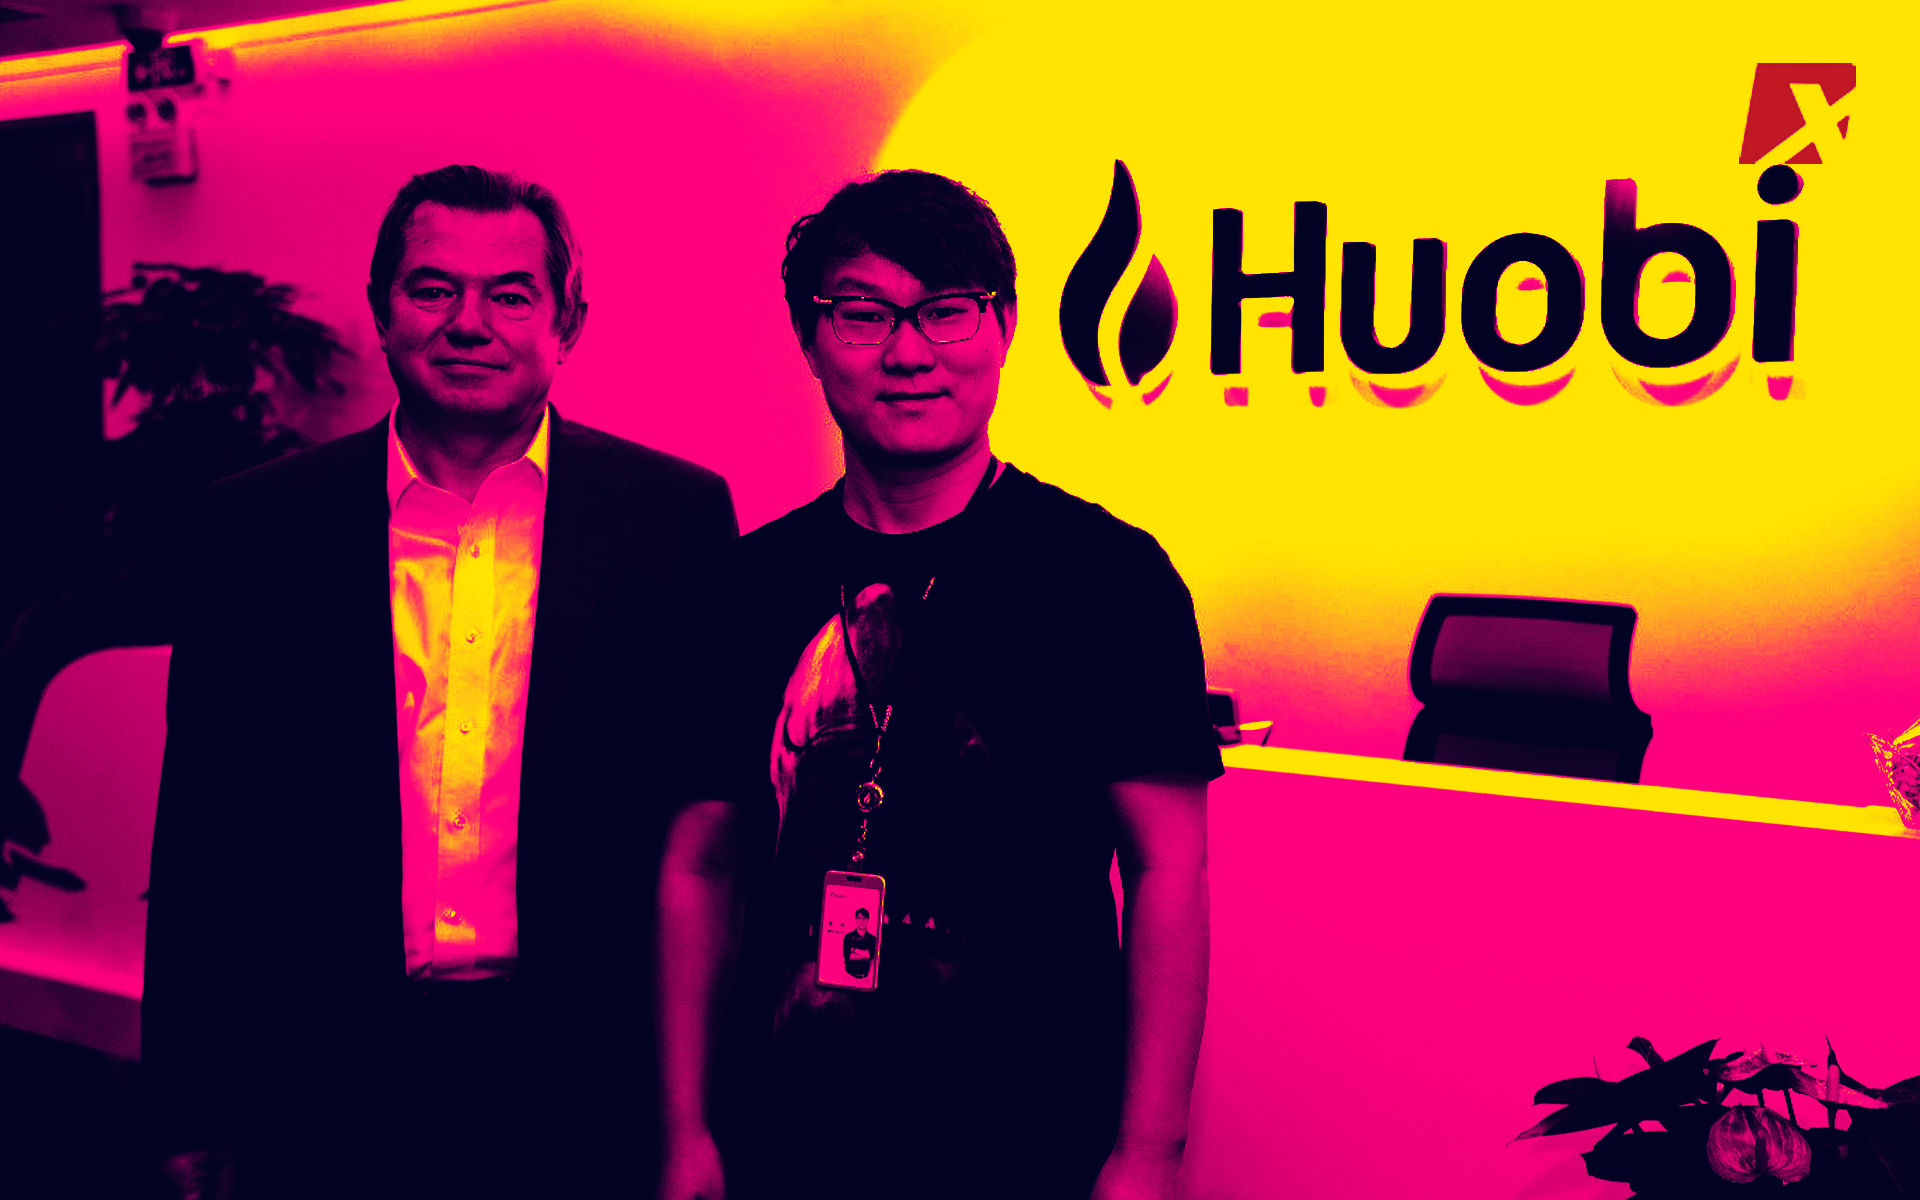 Huobi CEO And Putin's Advisor Chat About Blockchain